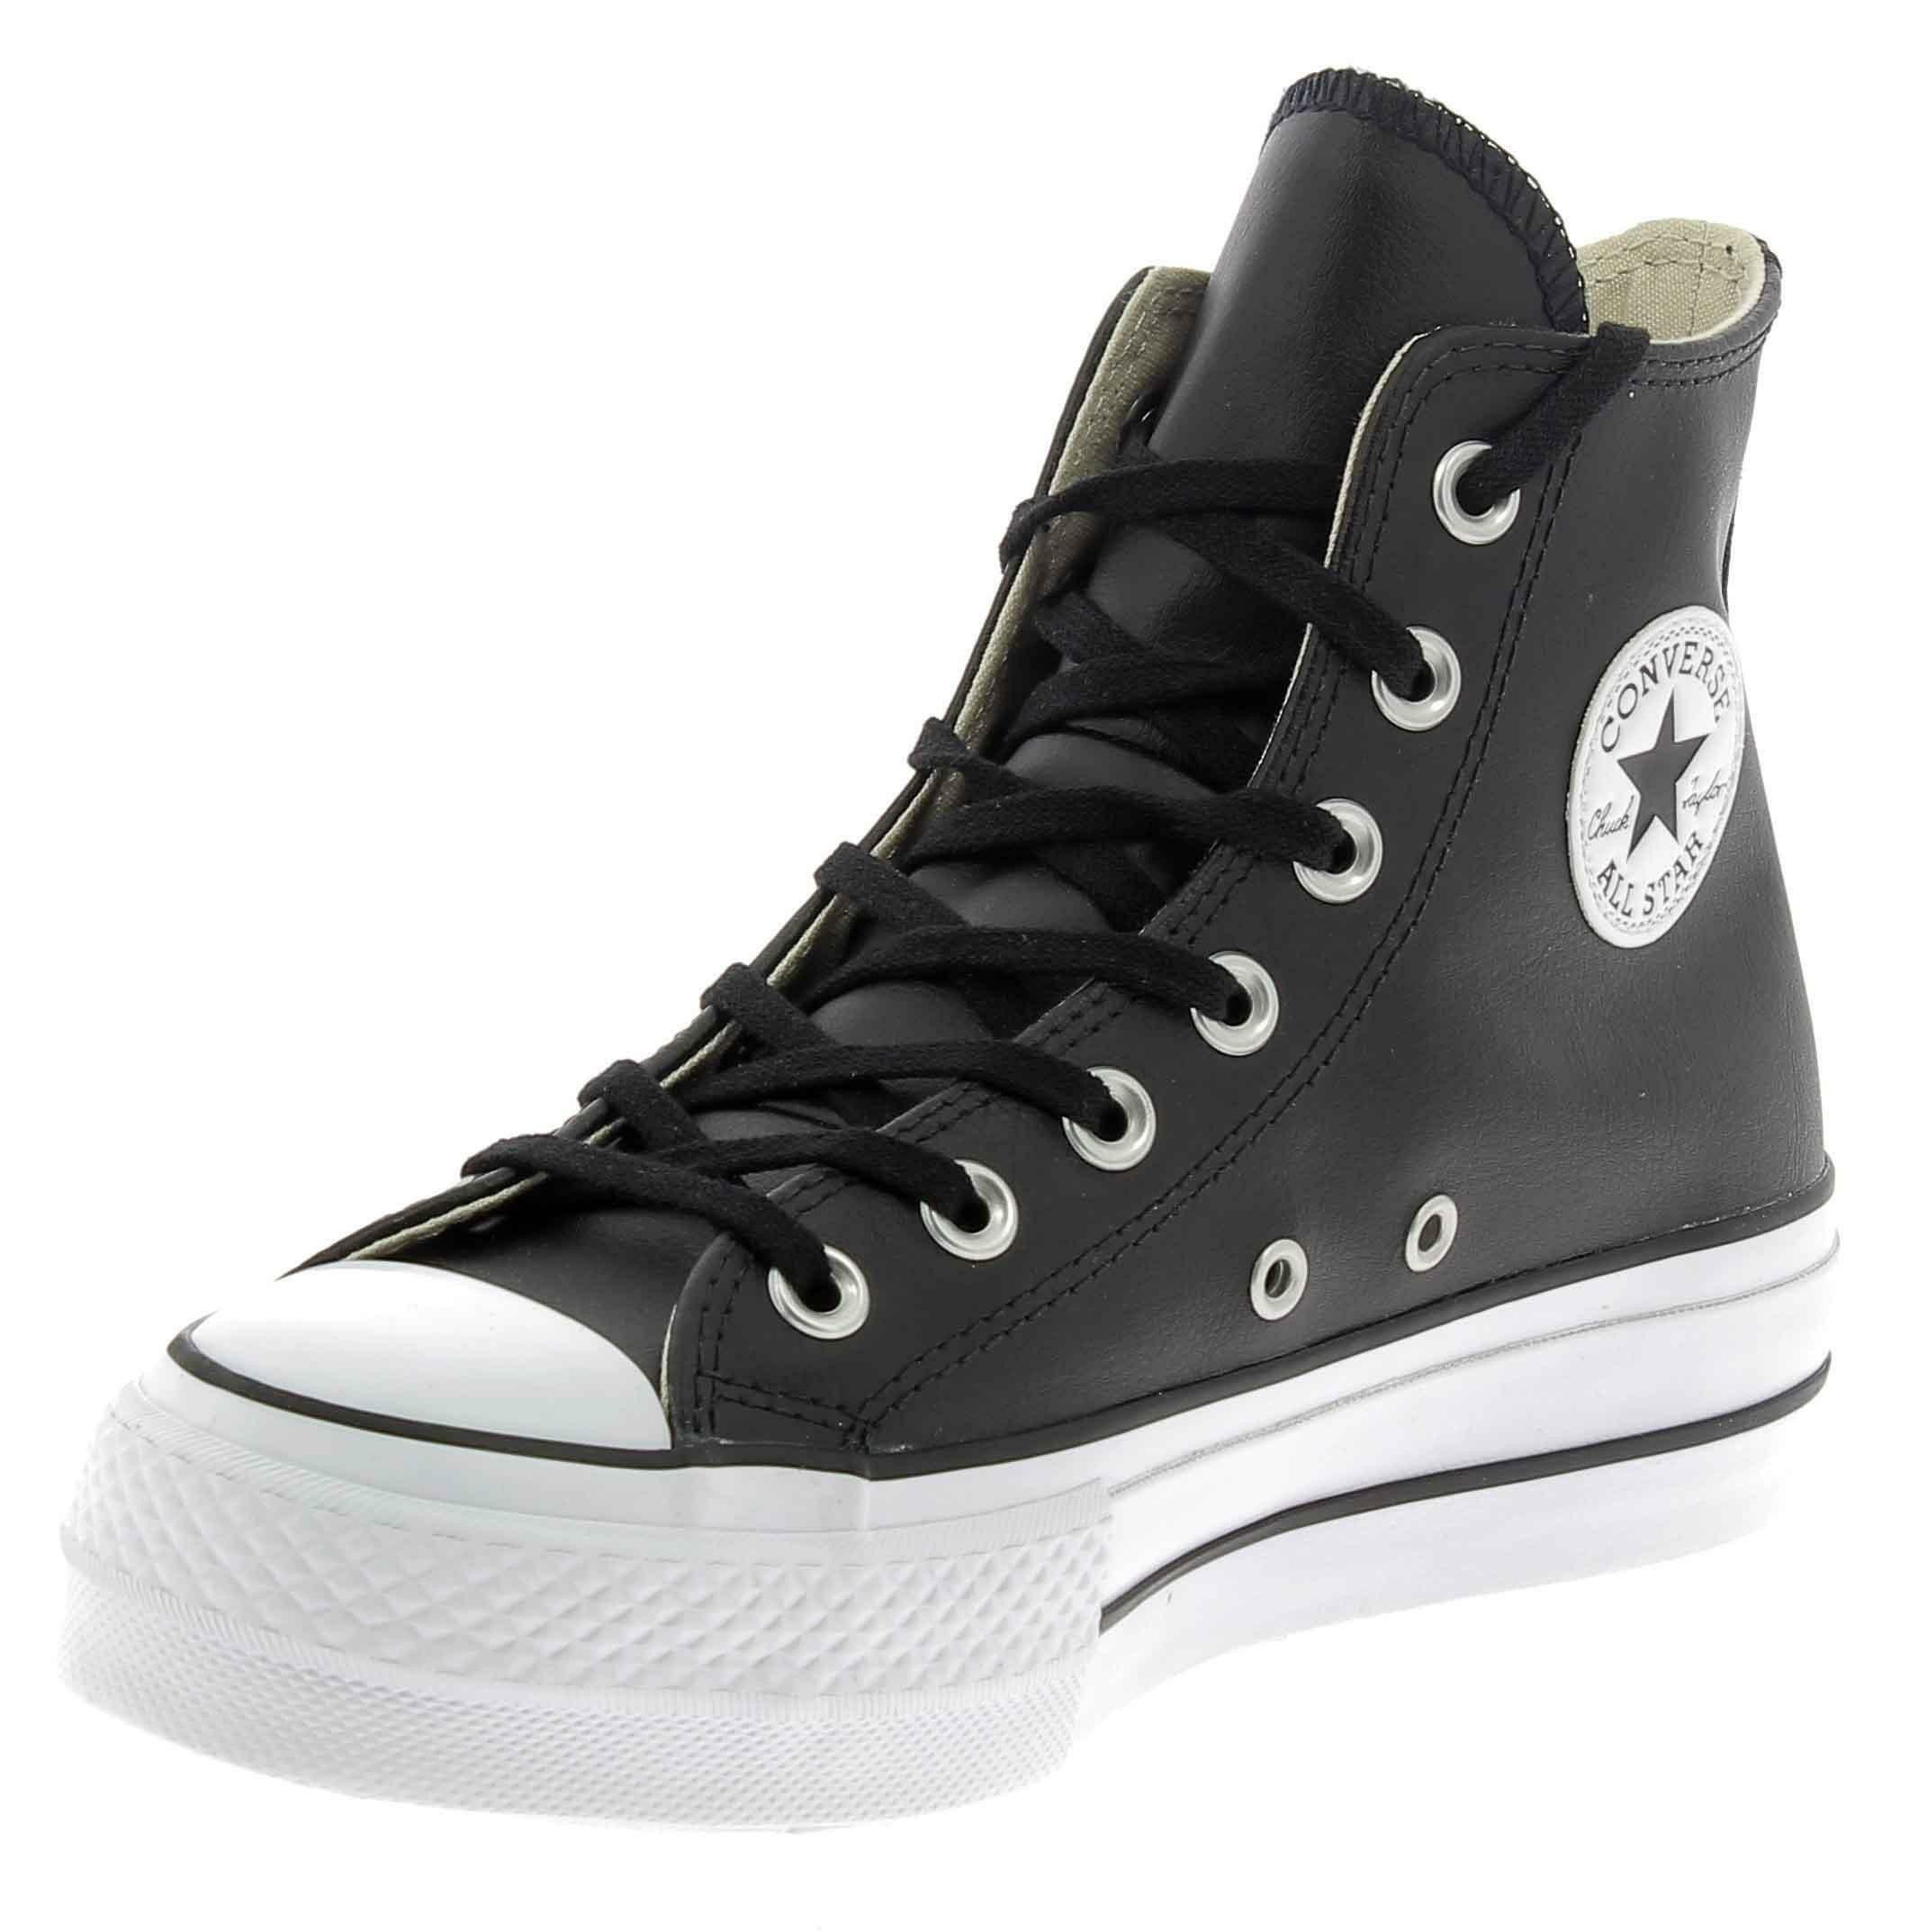 2converse in pelle nere